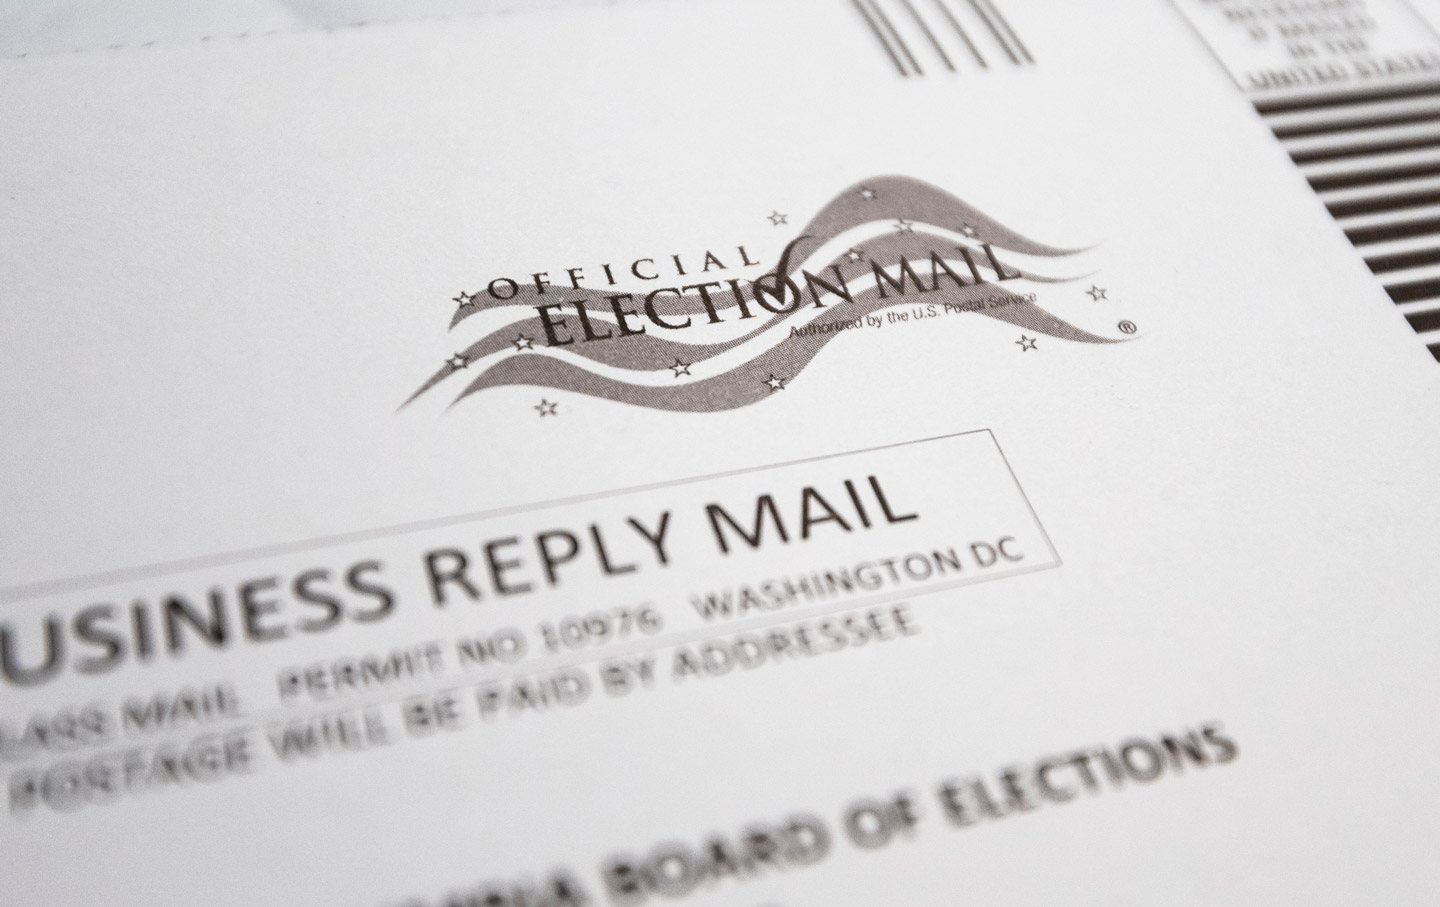 absentee-ballot-envelope-vote-gty-img